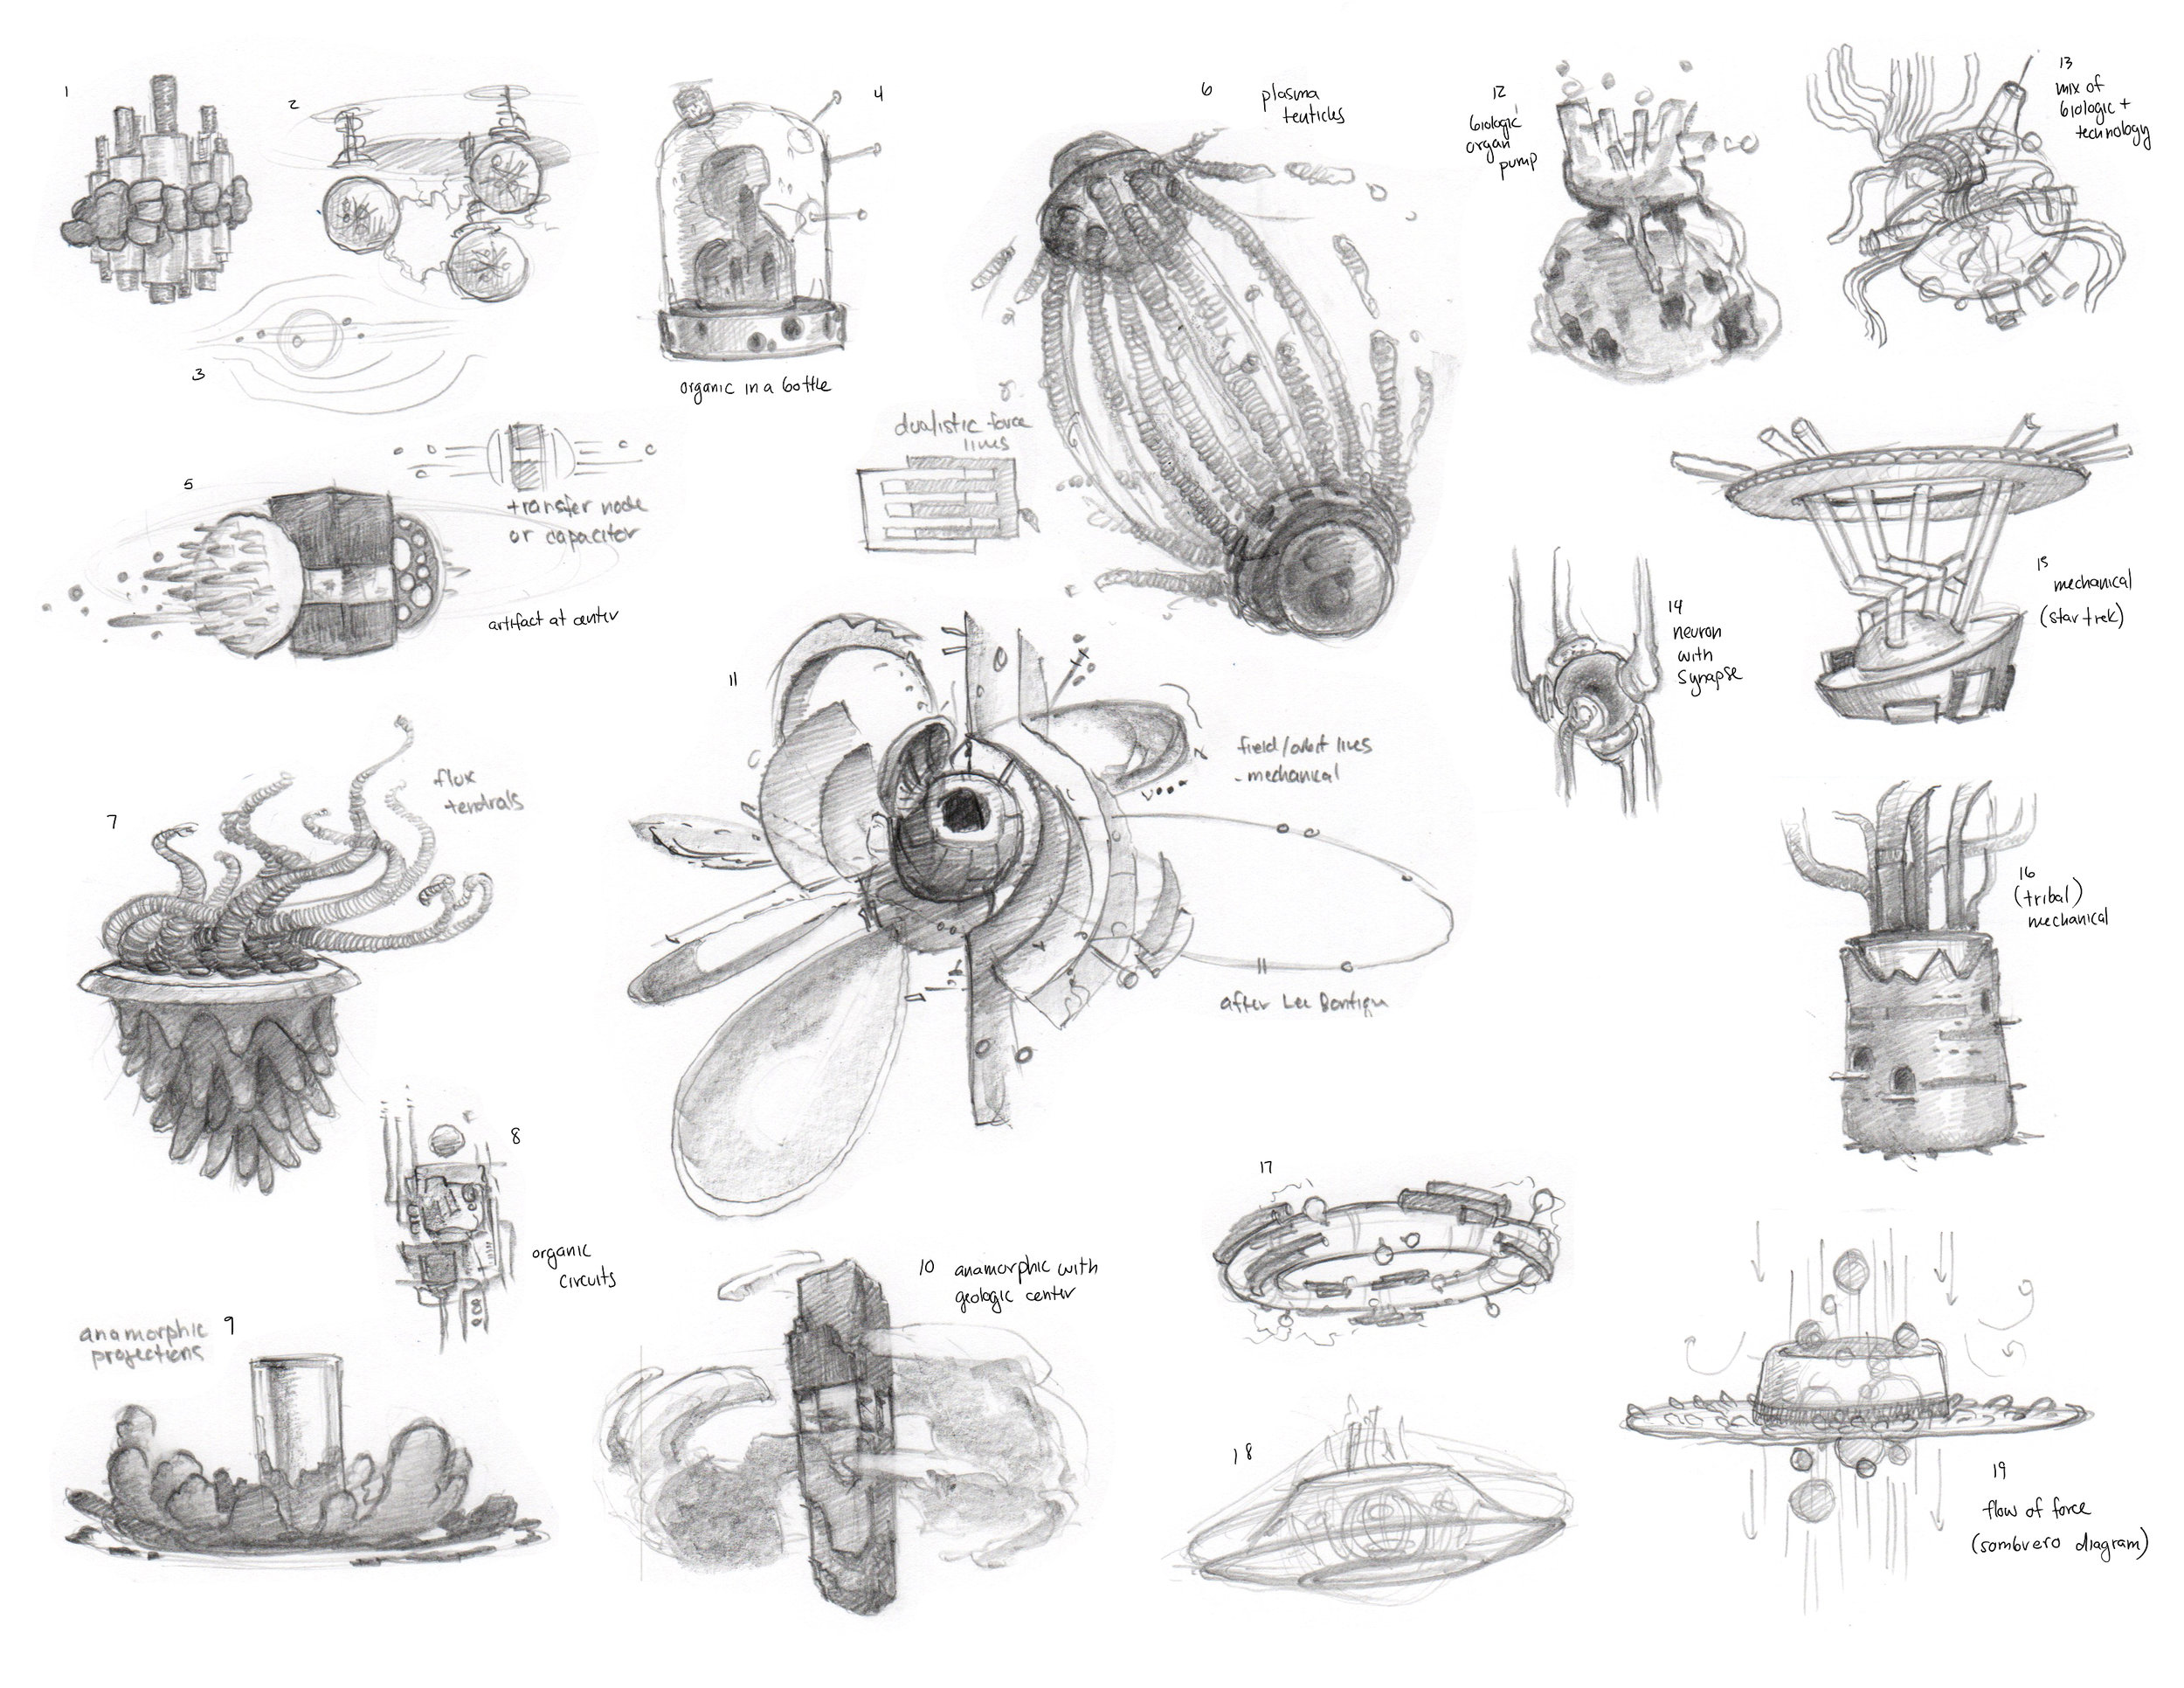 Exploring some different looks for the engine. I drew a lot on the work of modern sculptors like Lee Bontecou.